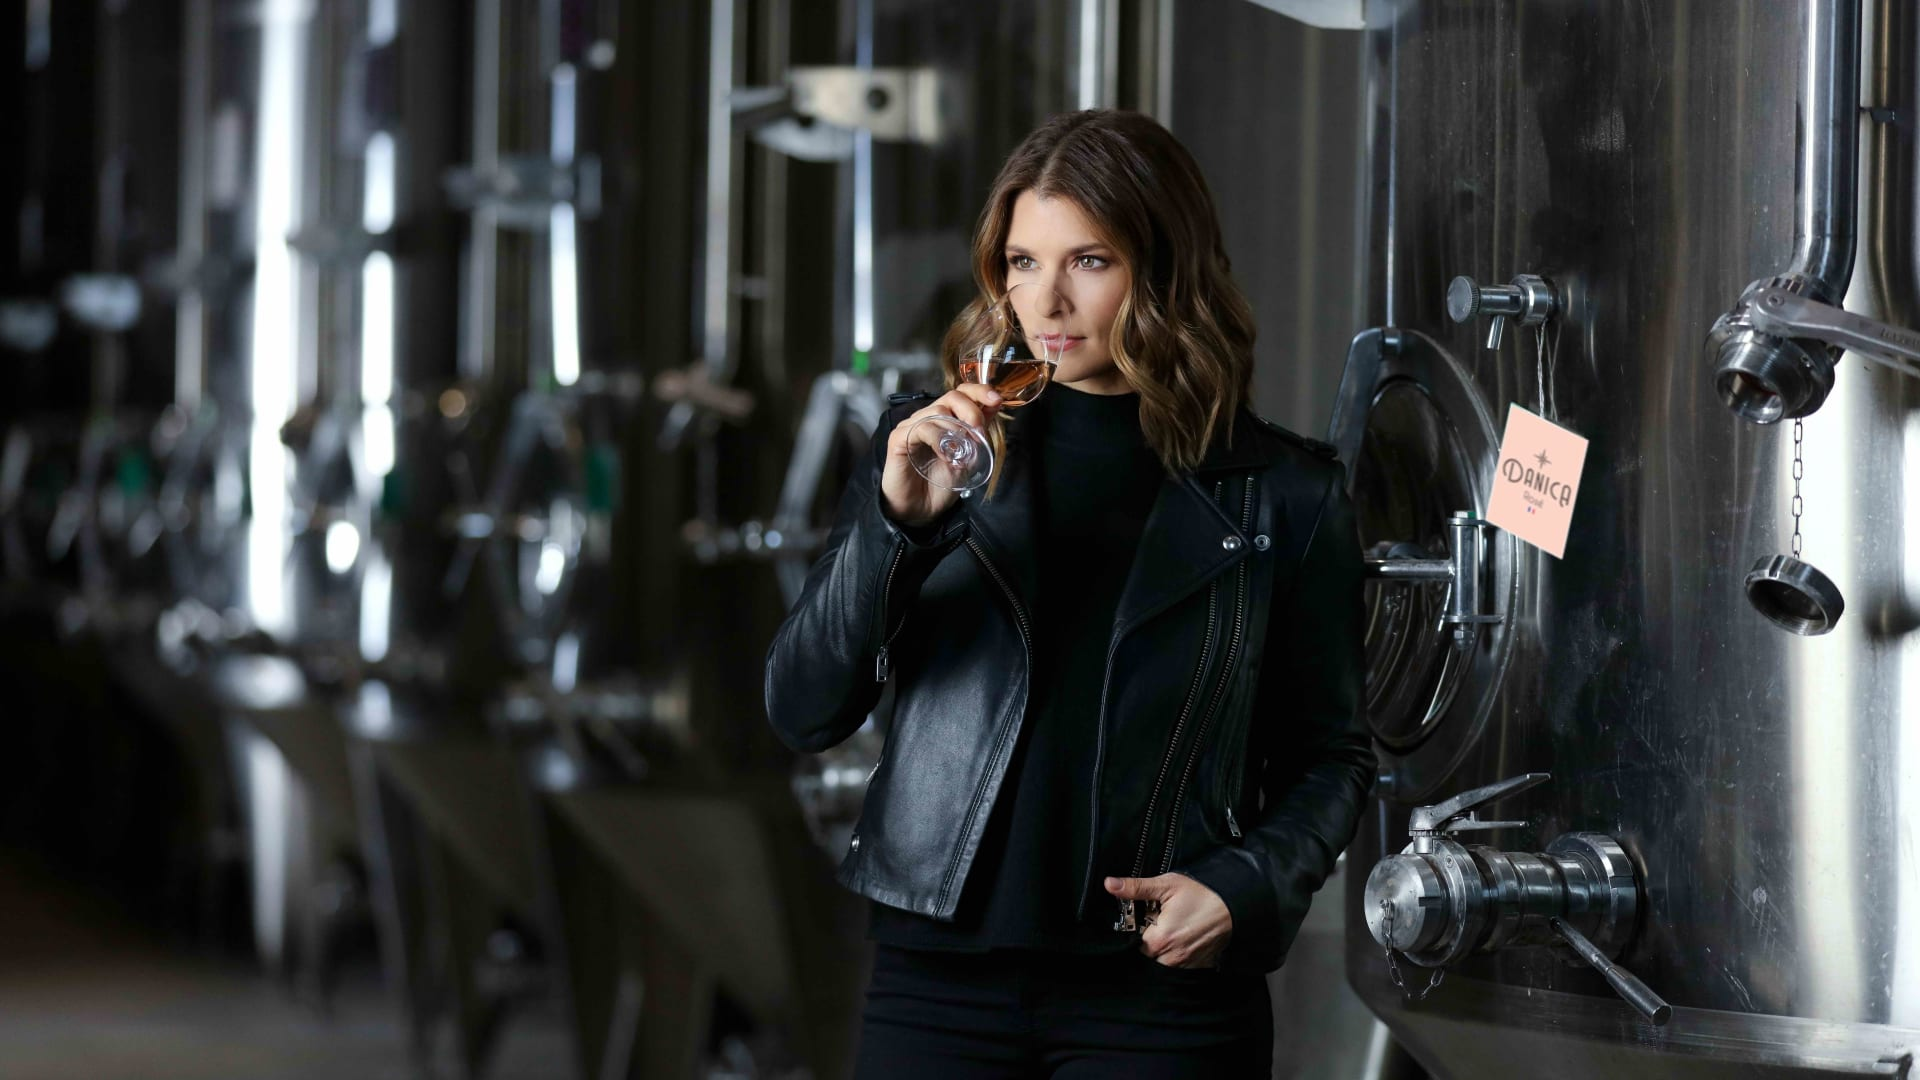 Danica Patrick: 'Being Human Is Easy, but Life Is Hard'